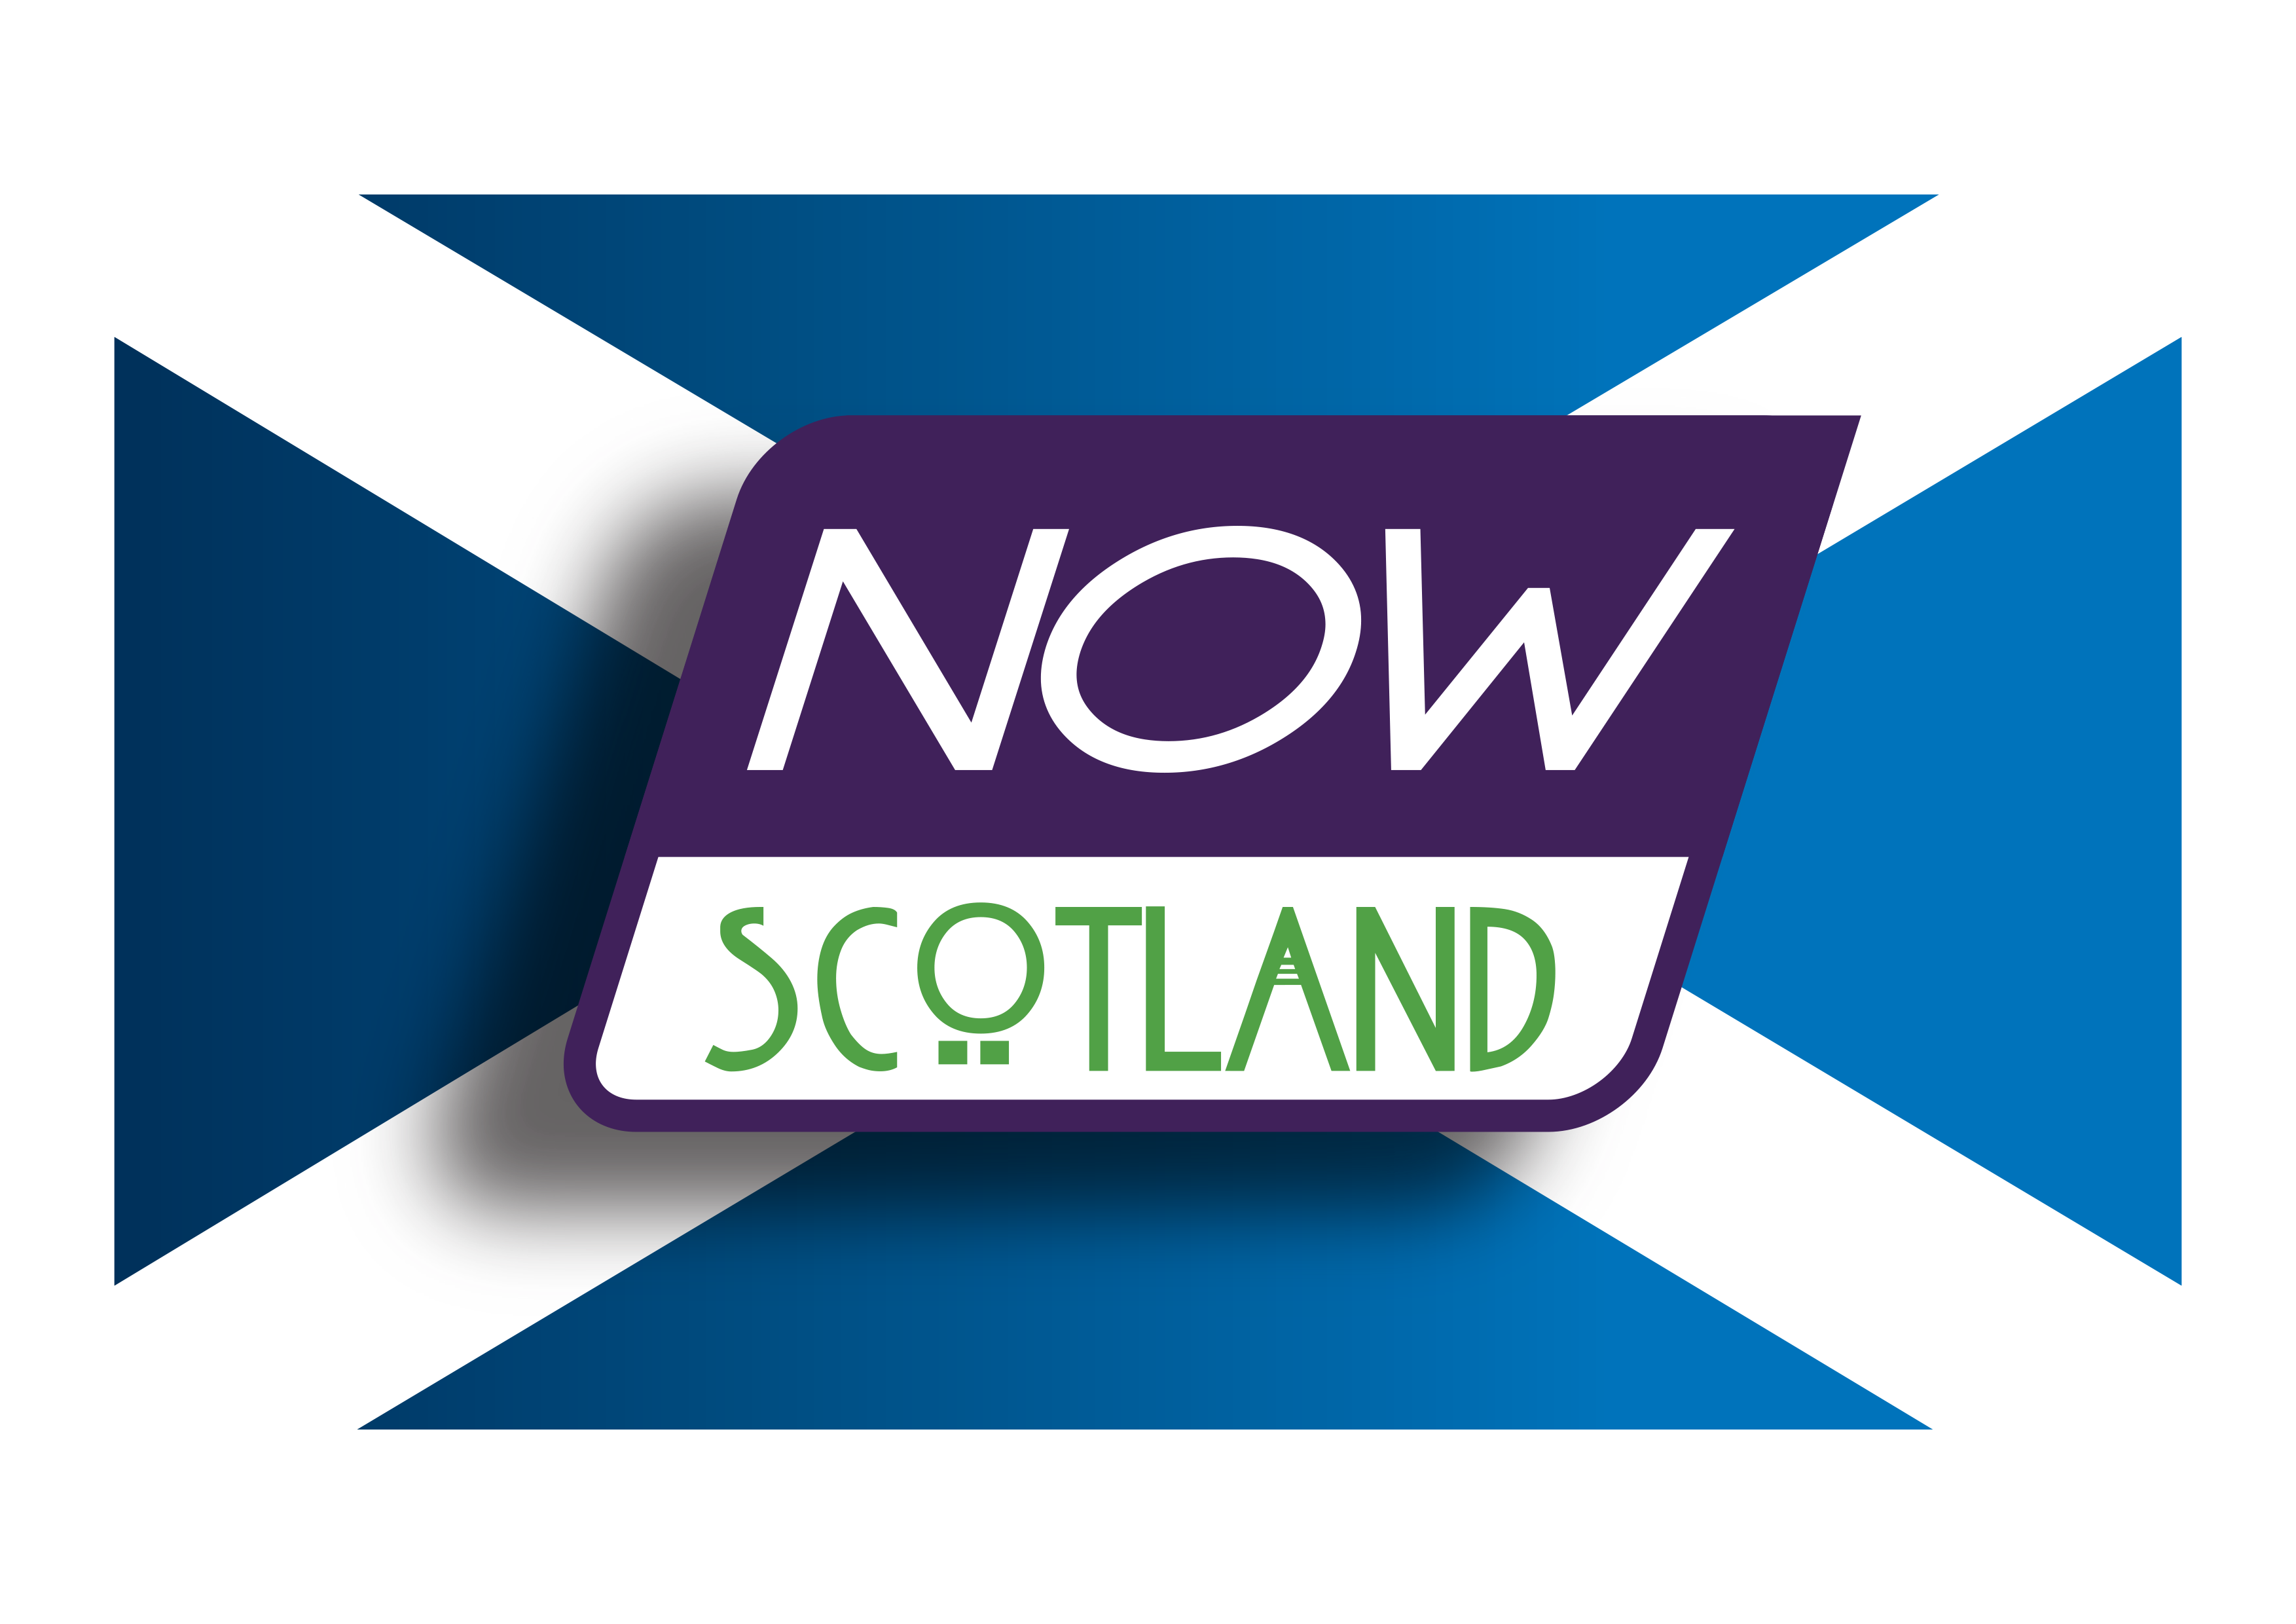 Welcome to the Now Scotland website